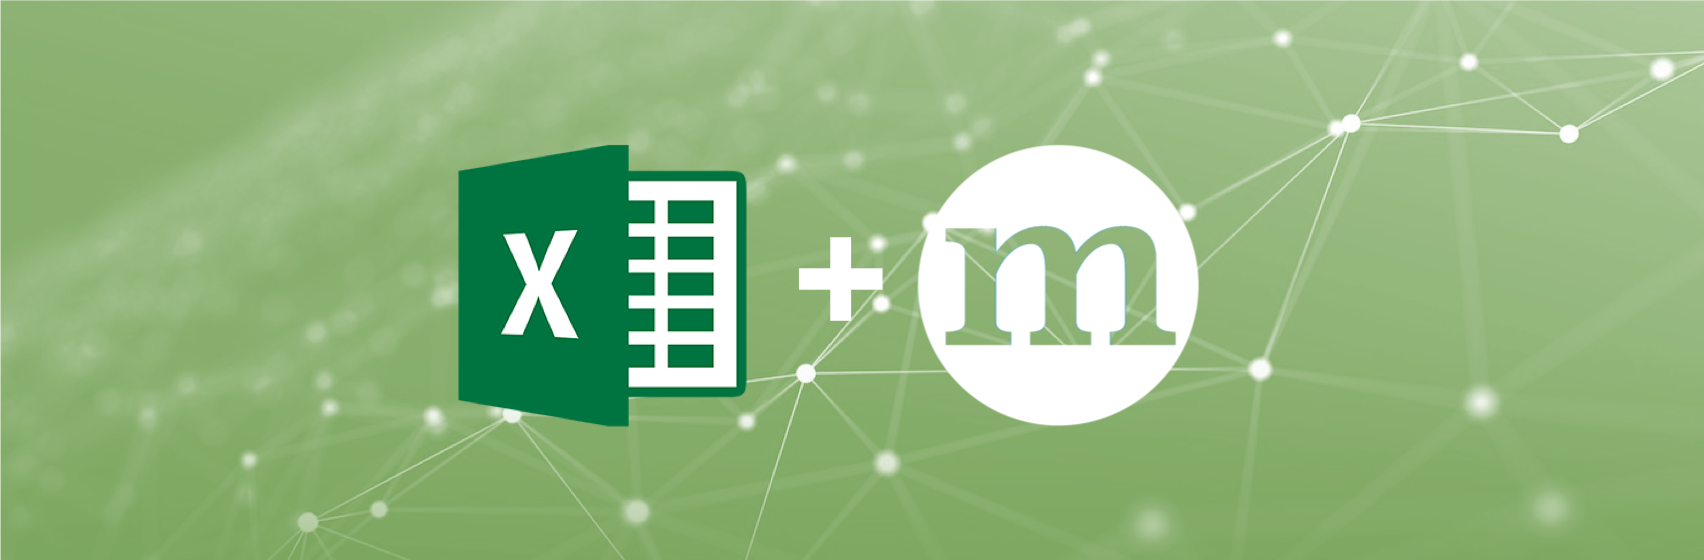 1D & 3D Convolutions explained with… MS Excel! - Apache MXNet - Medium